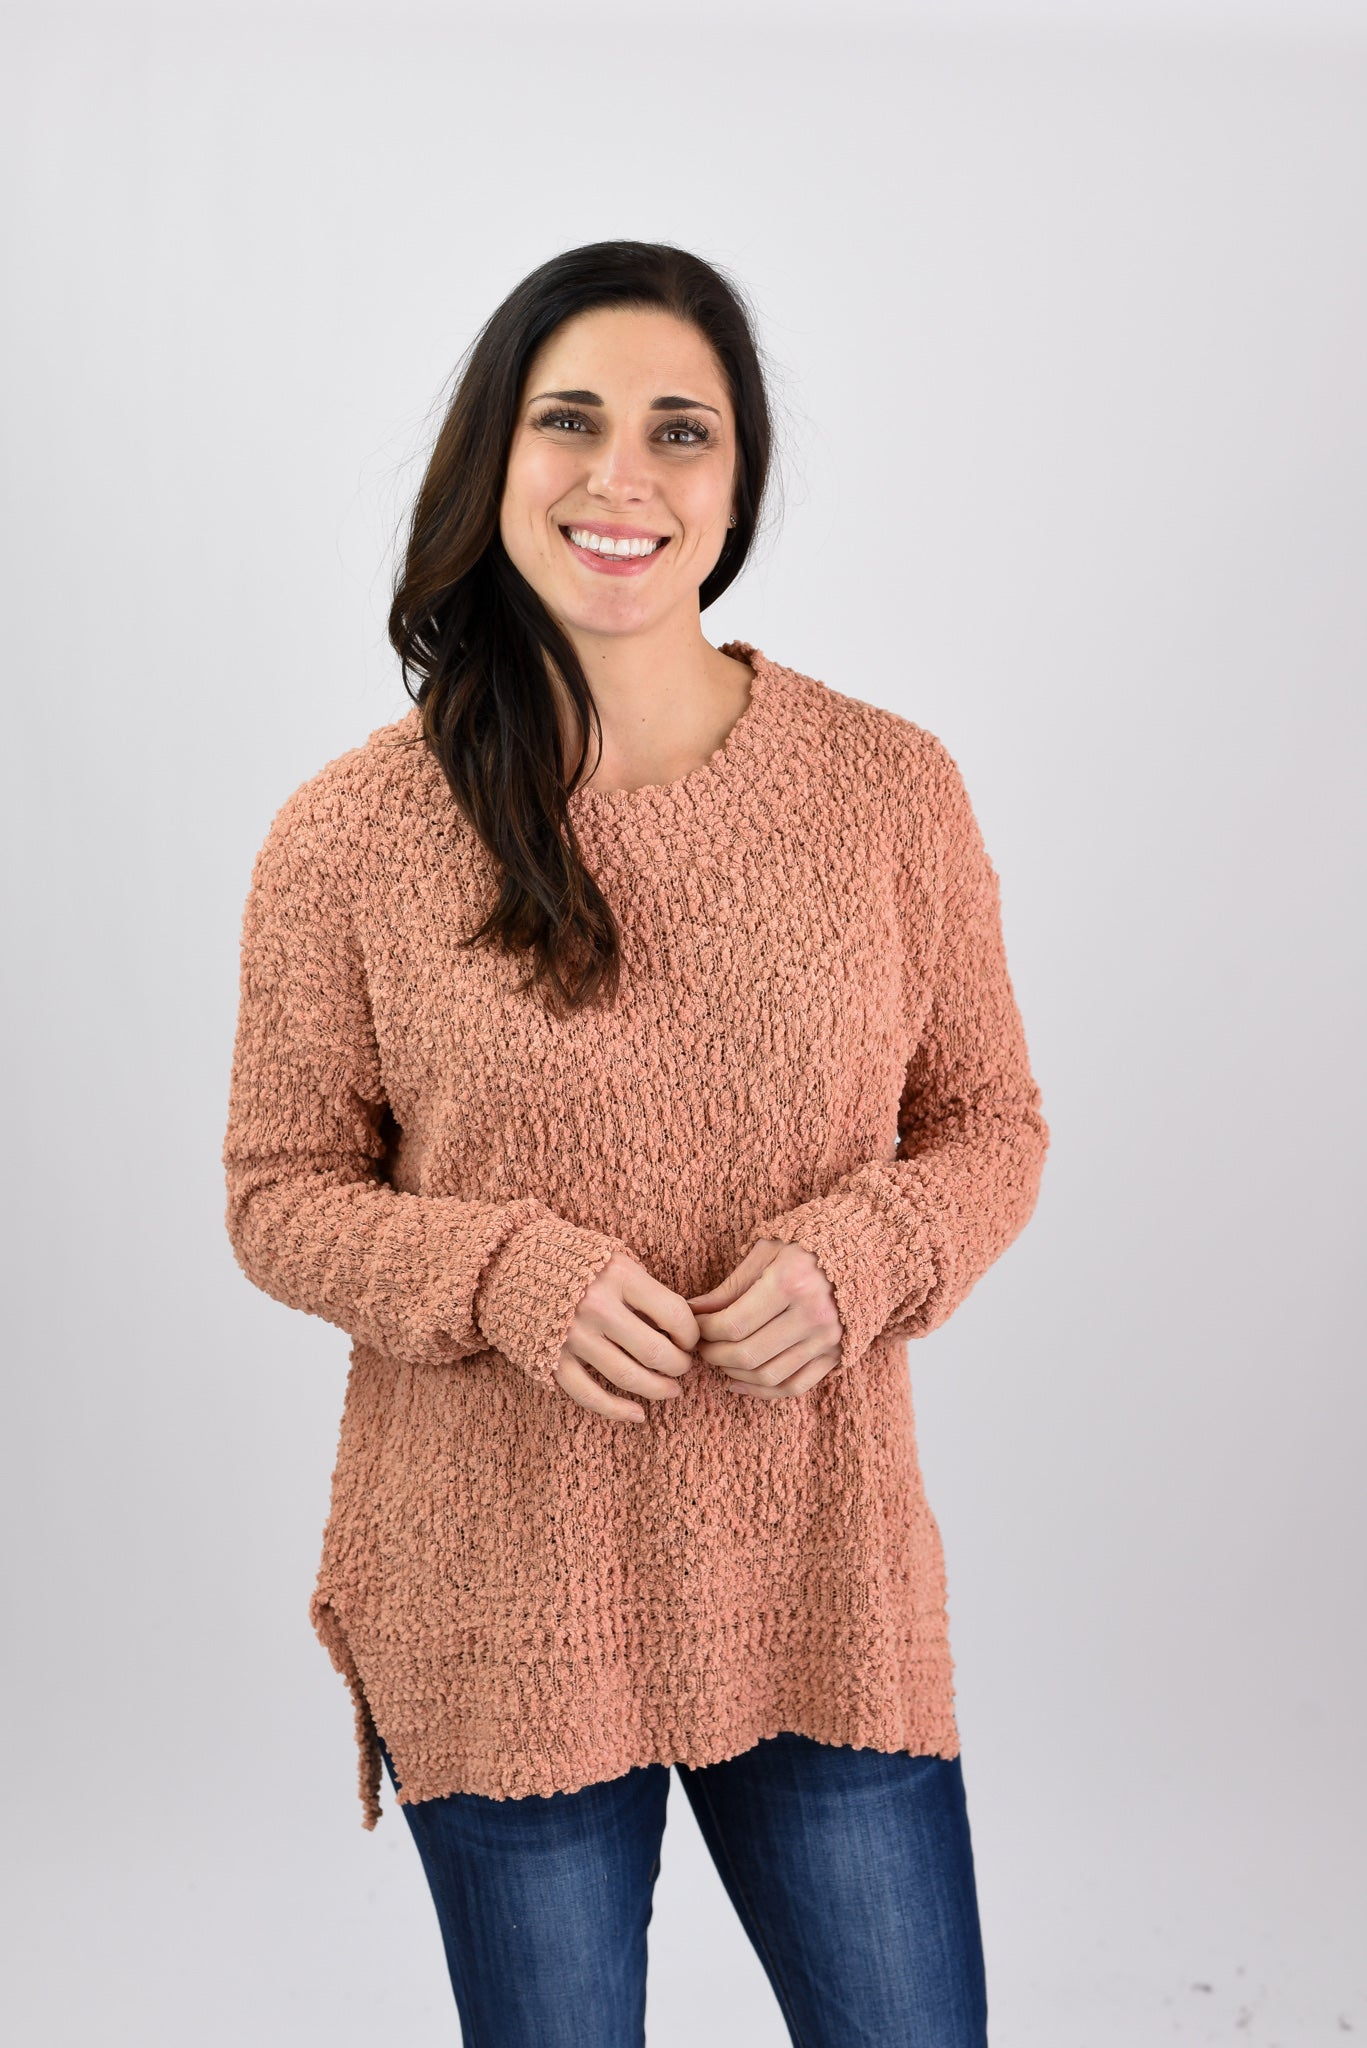 Look From Afar Popcorn Sweater - Sunrise Orange